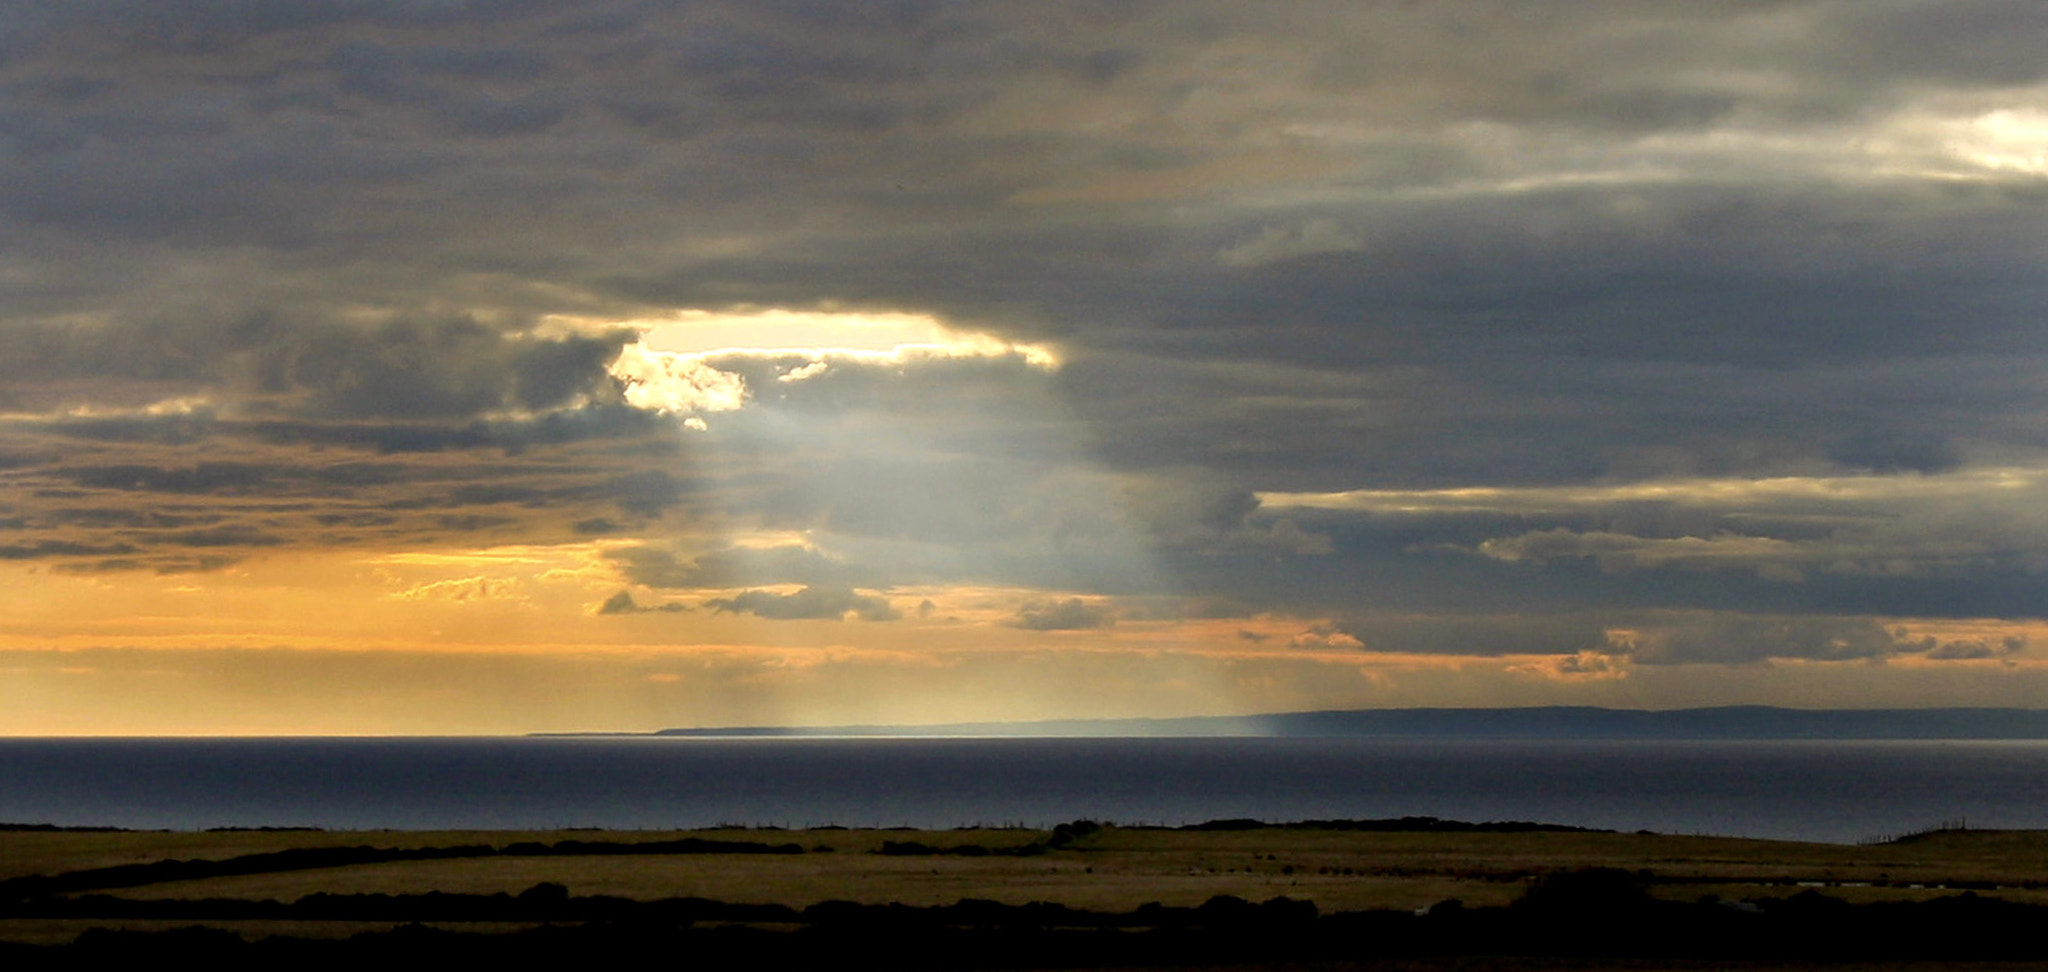 Photograph Sun ray over Tramore bay by Matt Kehoe on 500px